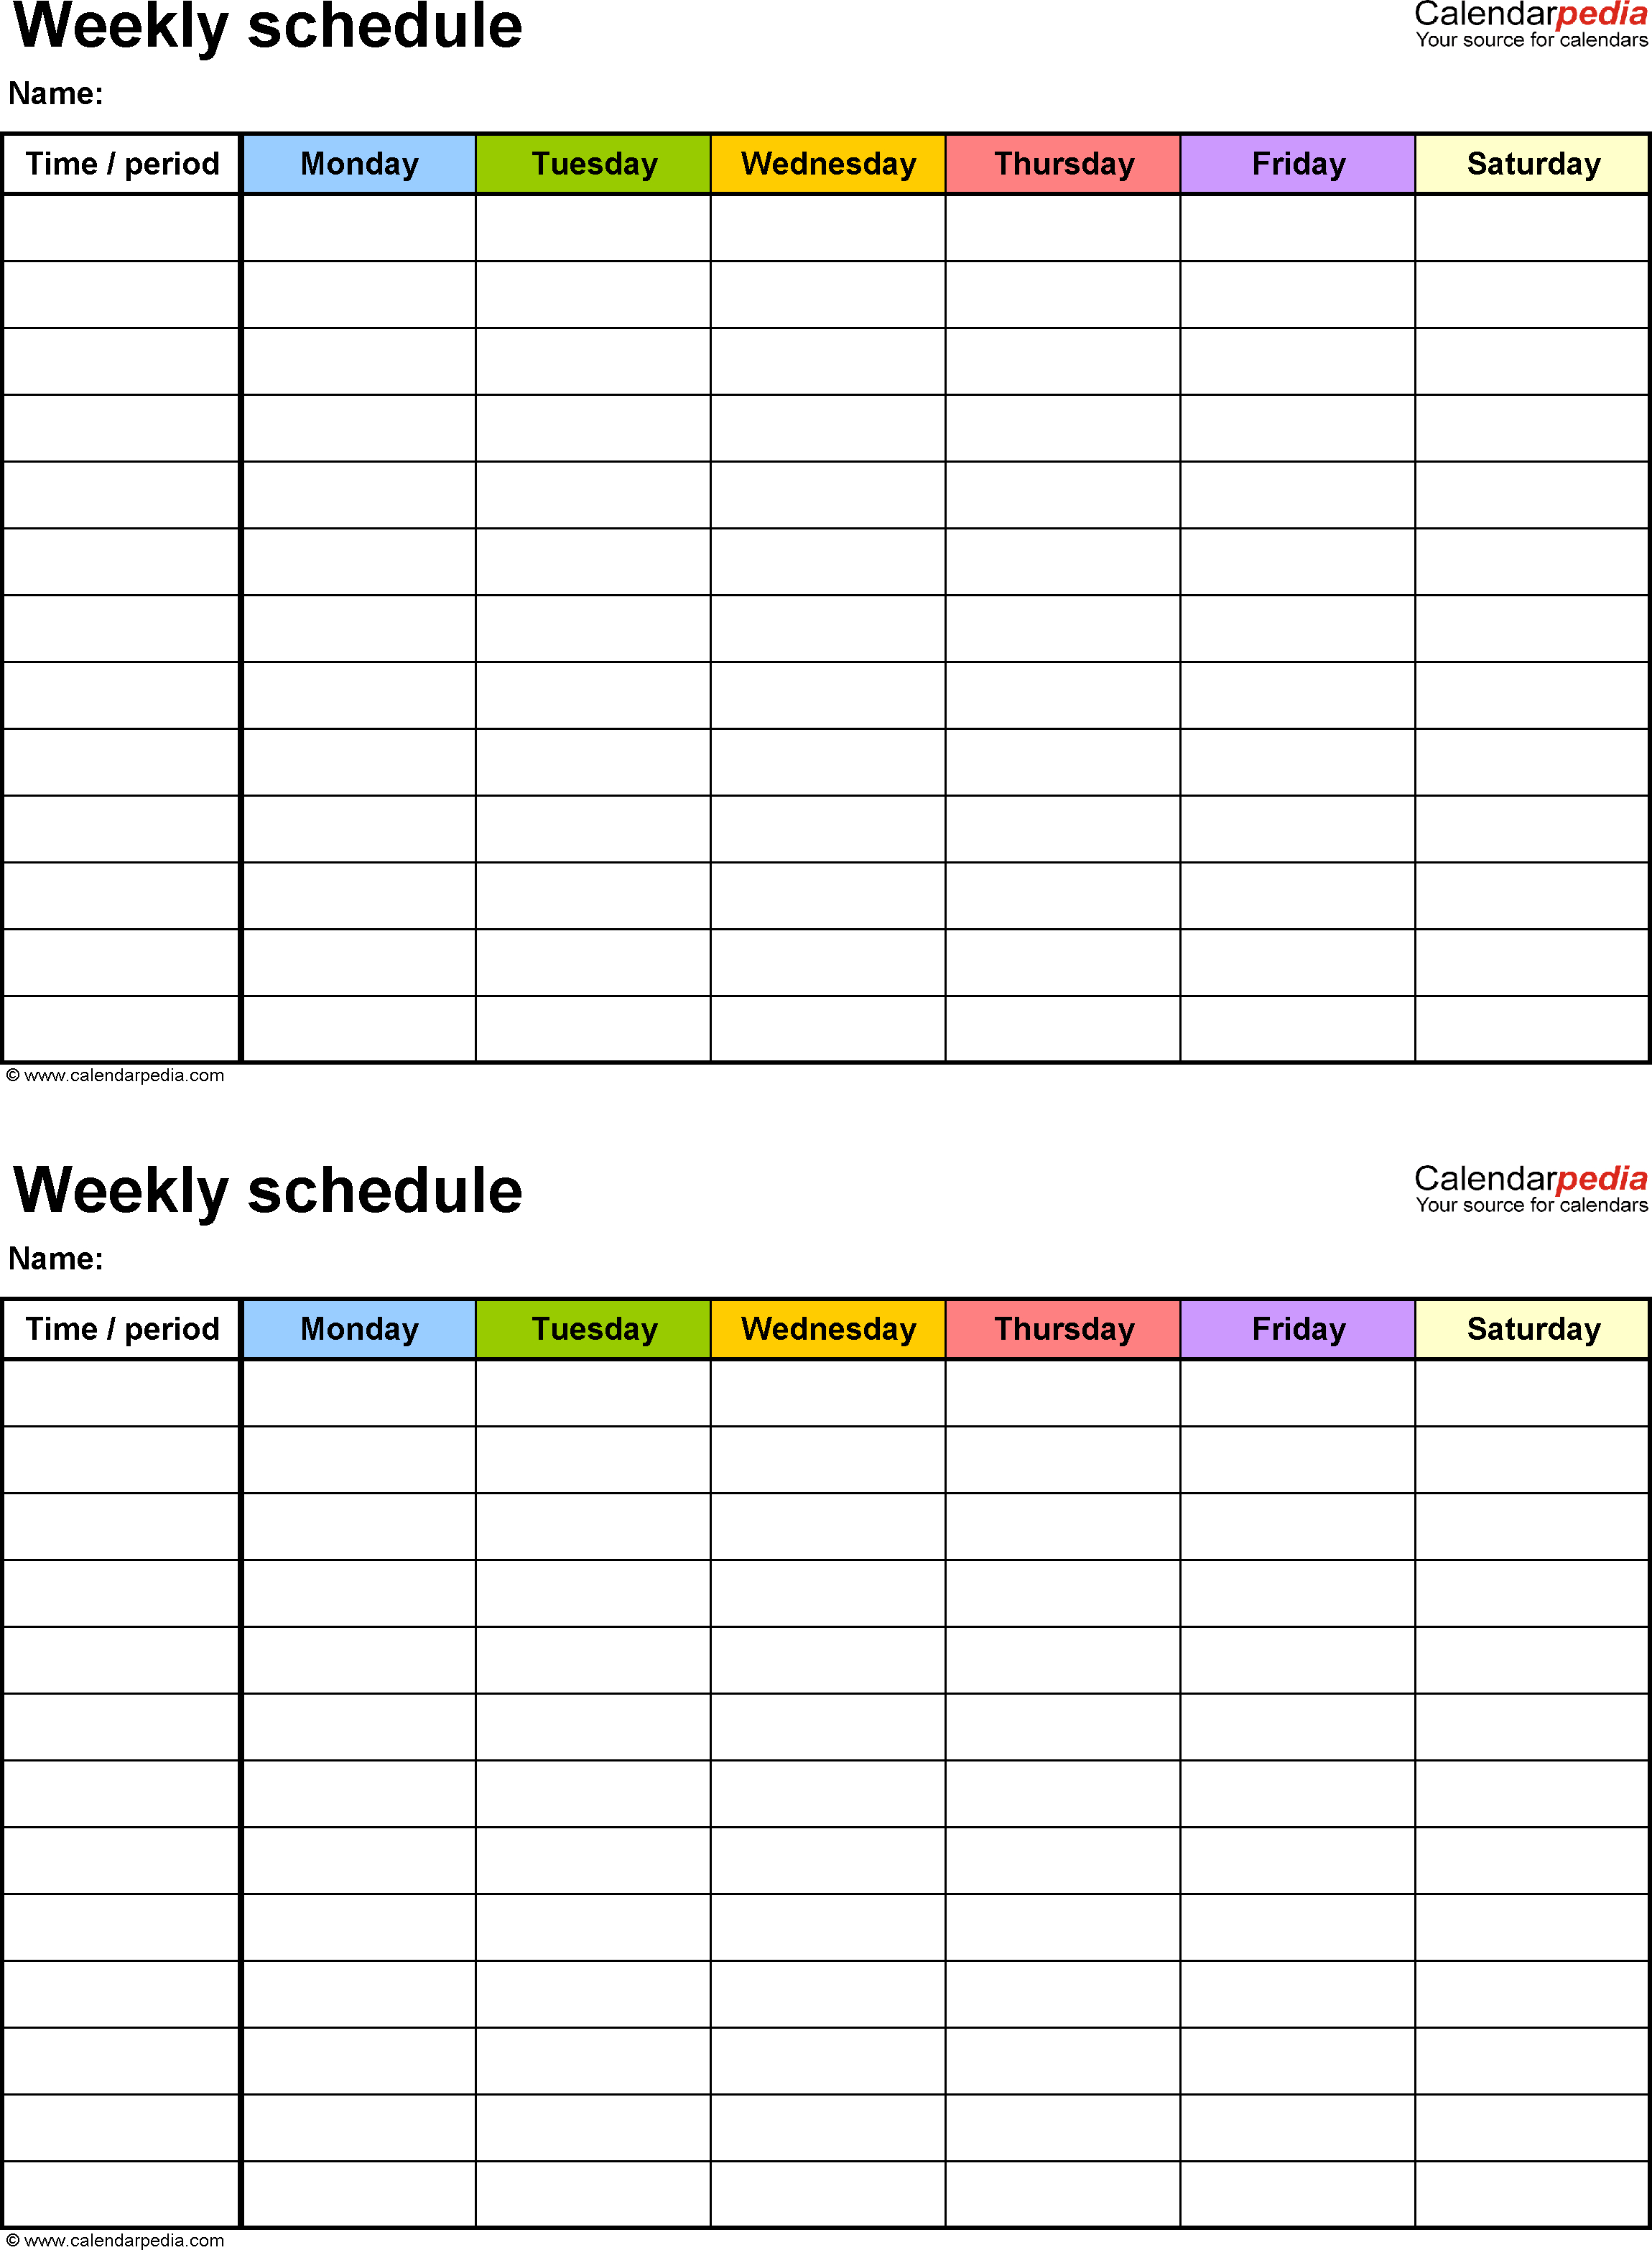 Free Weekly Schedule Templates For Word - 18 Templates pertaining to Printable 2 Week Calendar Template